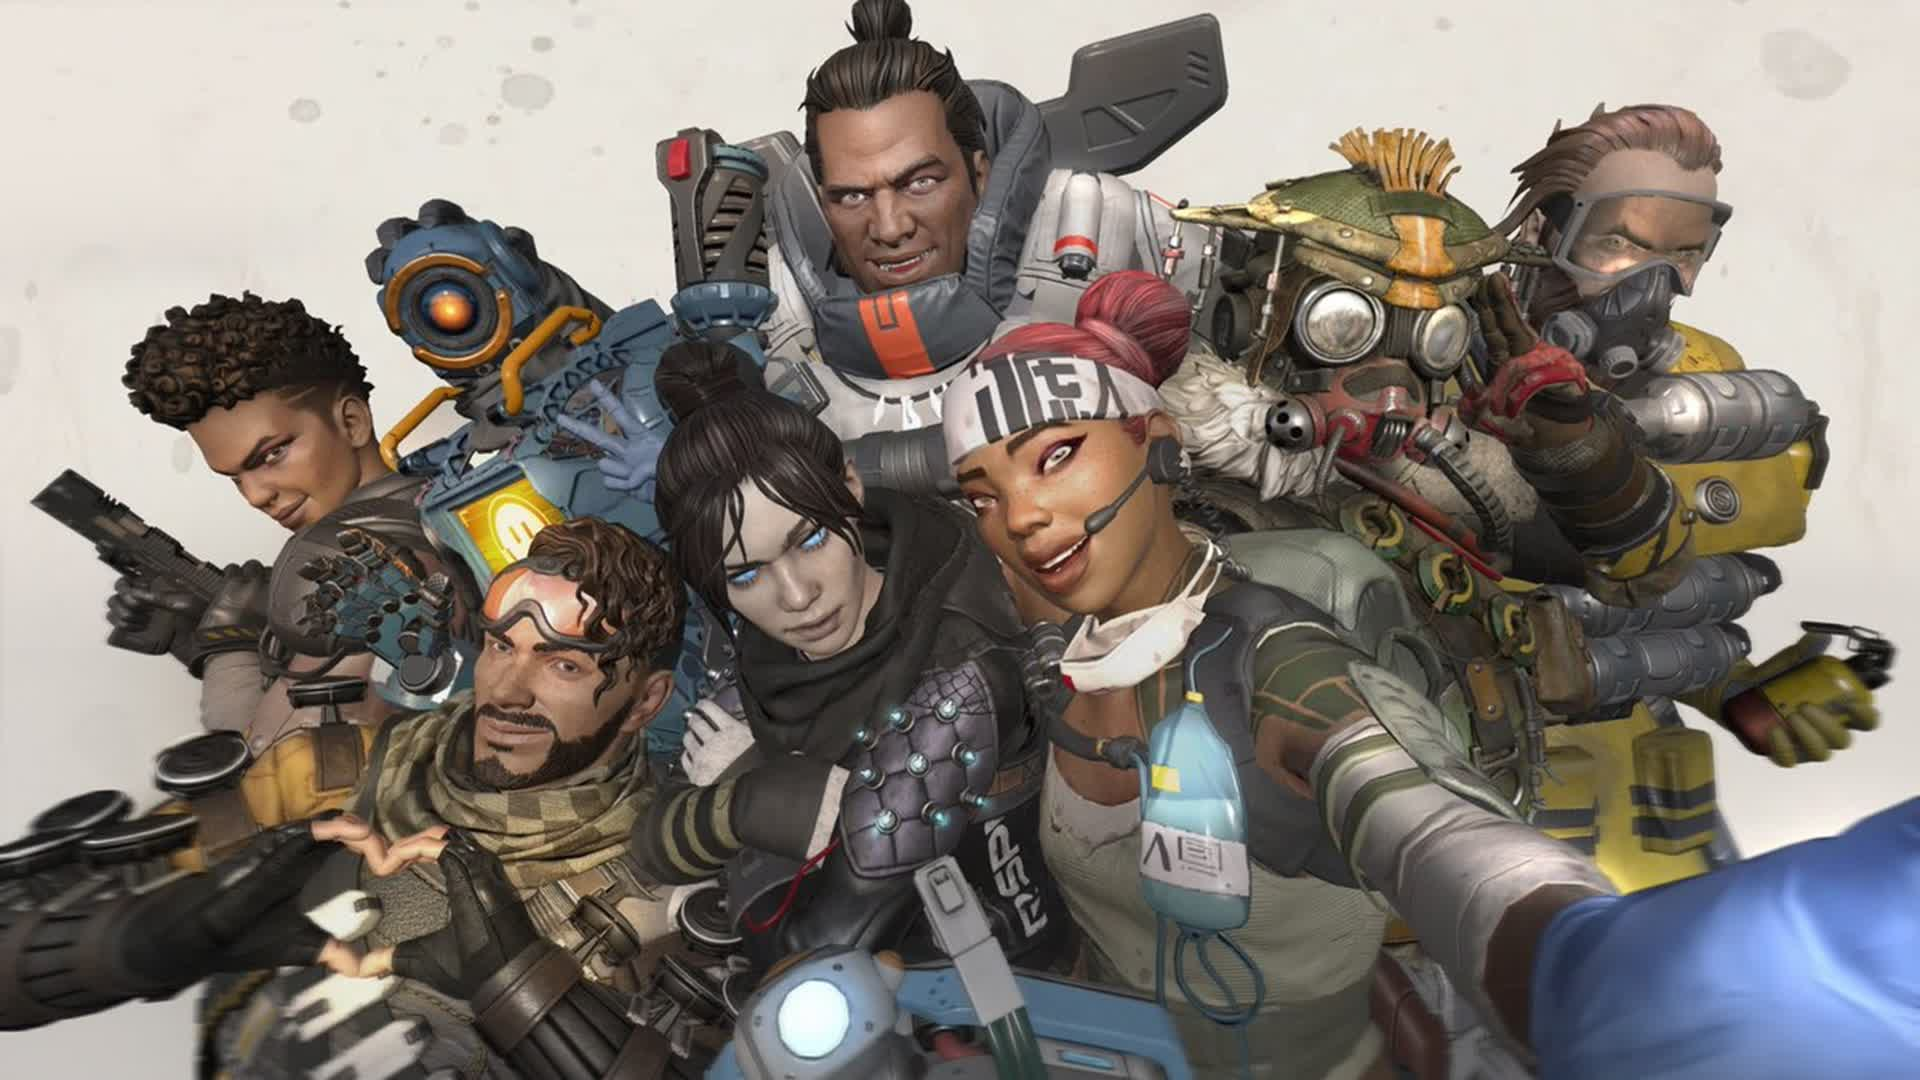 Apex Legends developer fired over racist, sexist comments made in 2007